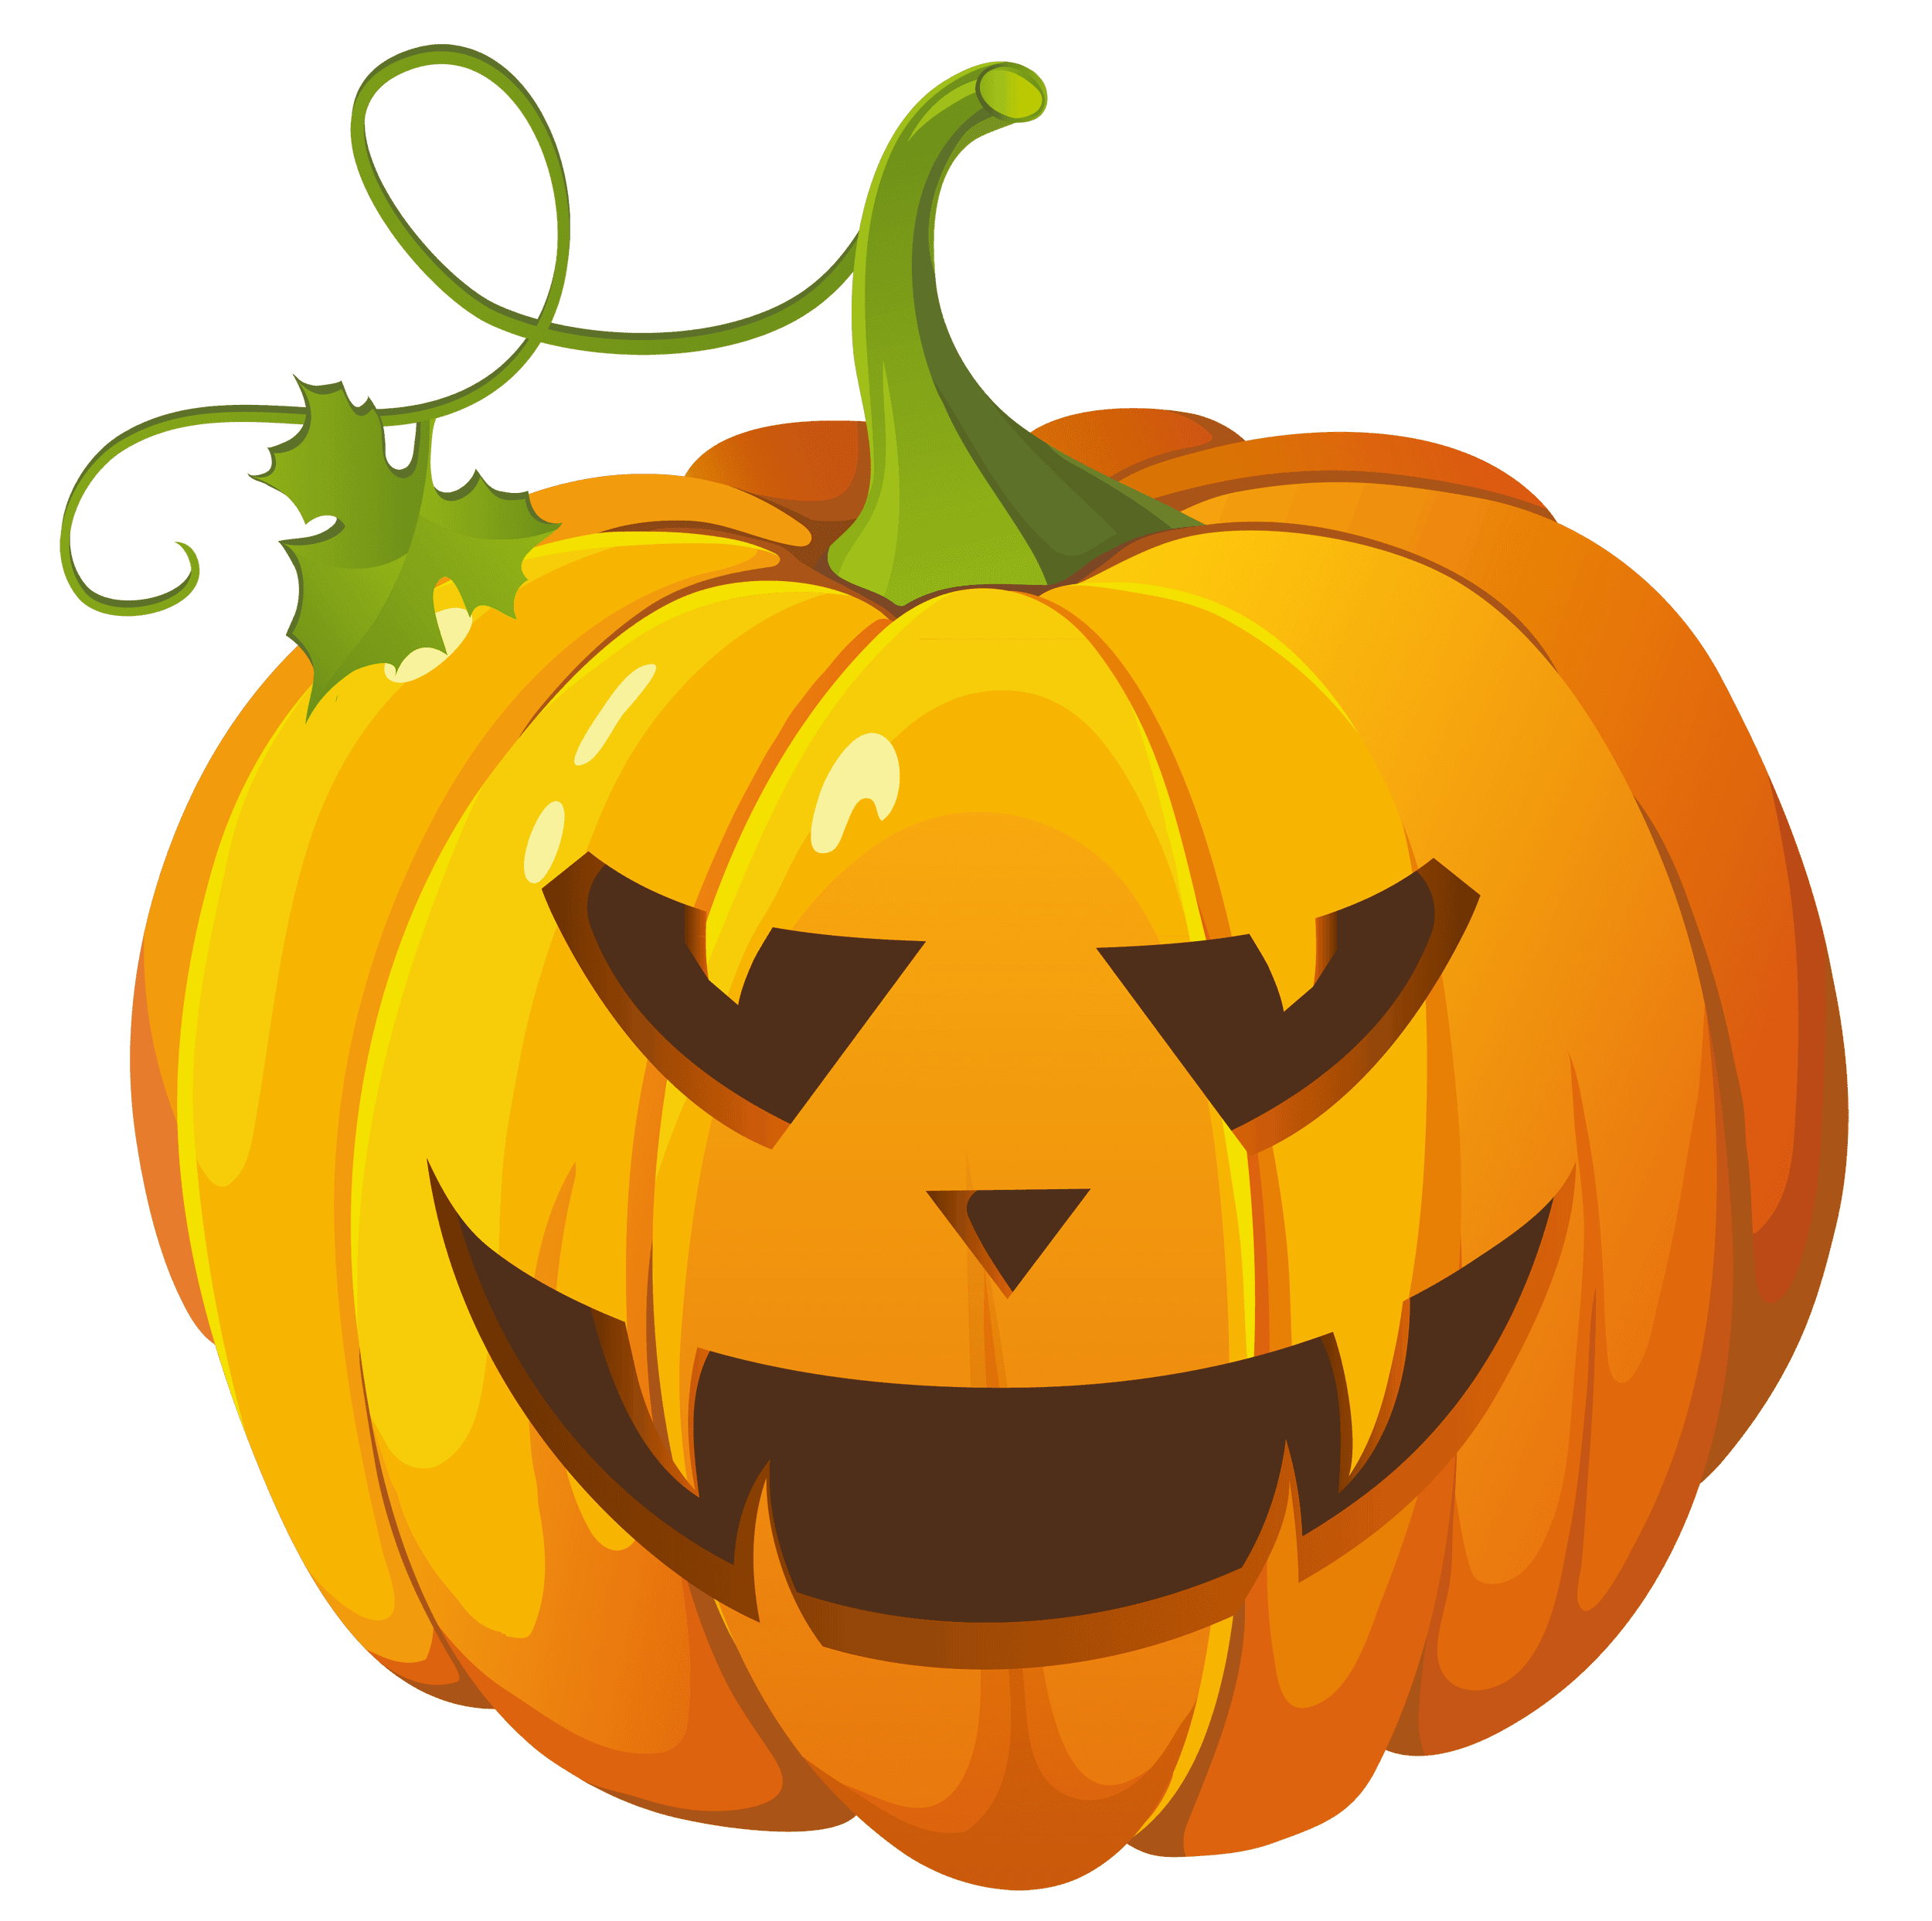 Clip art image of a carved jack o' lantern